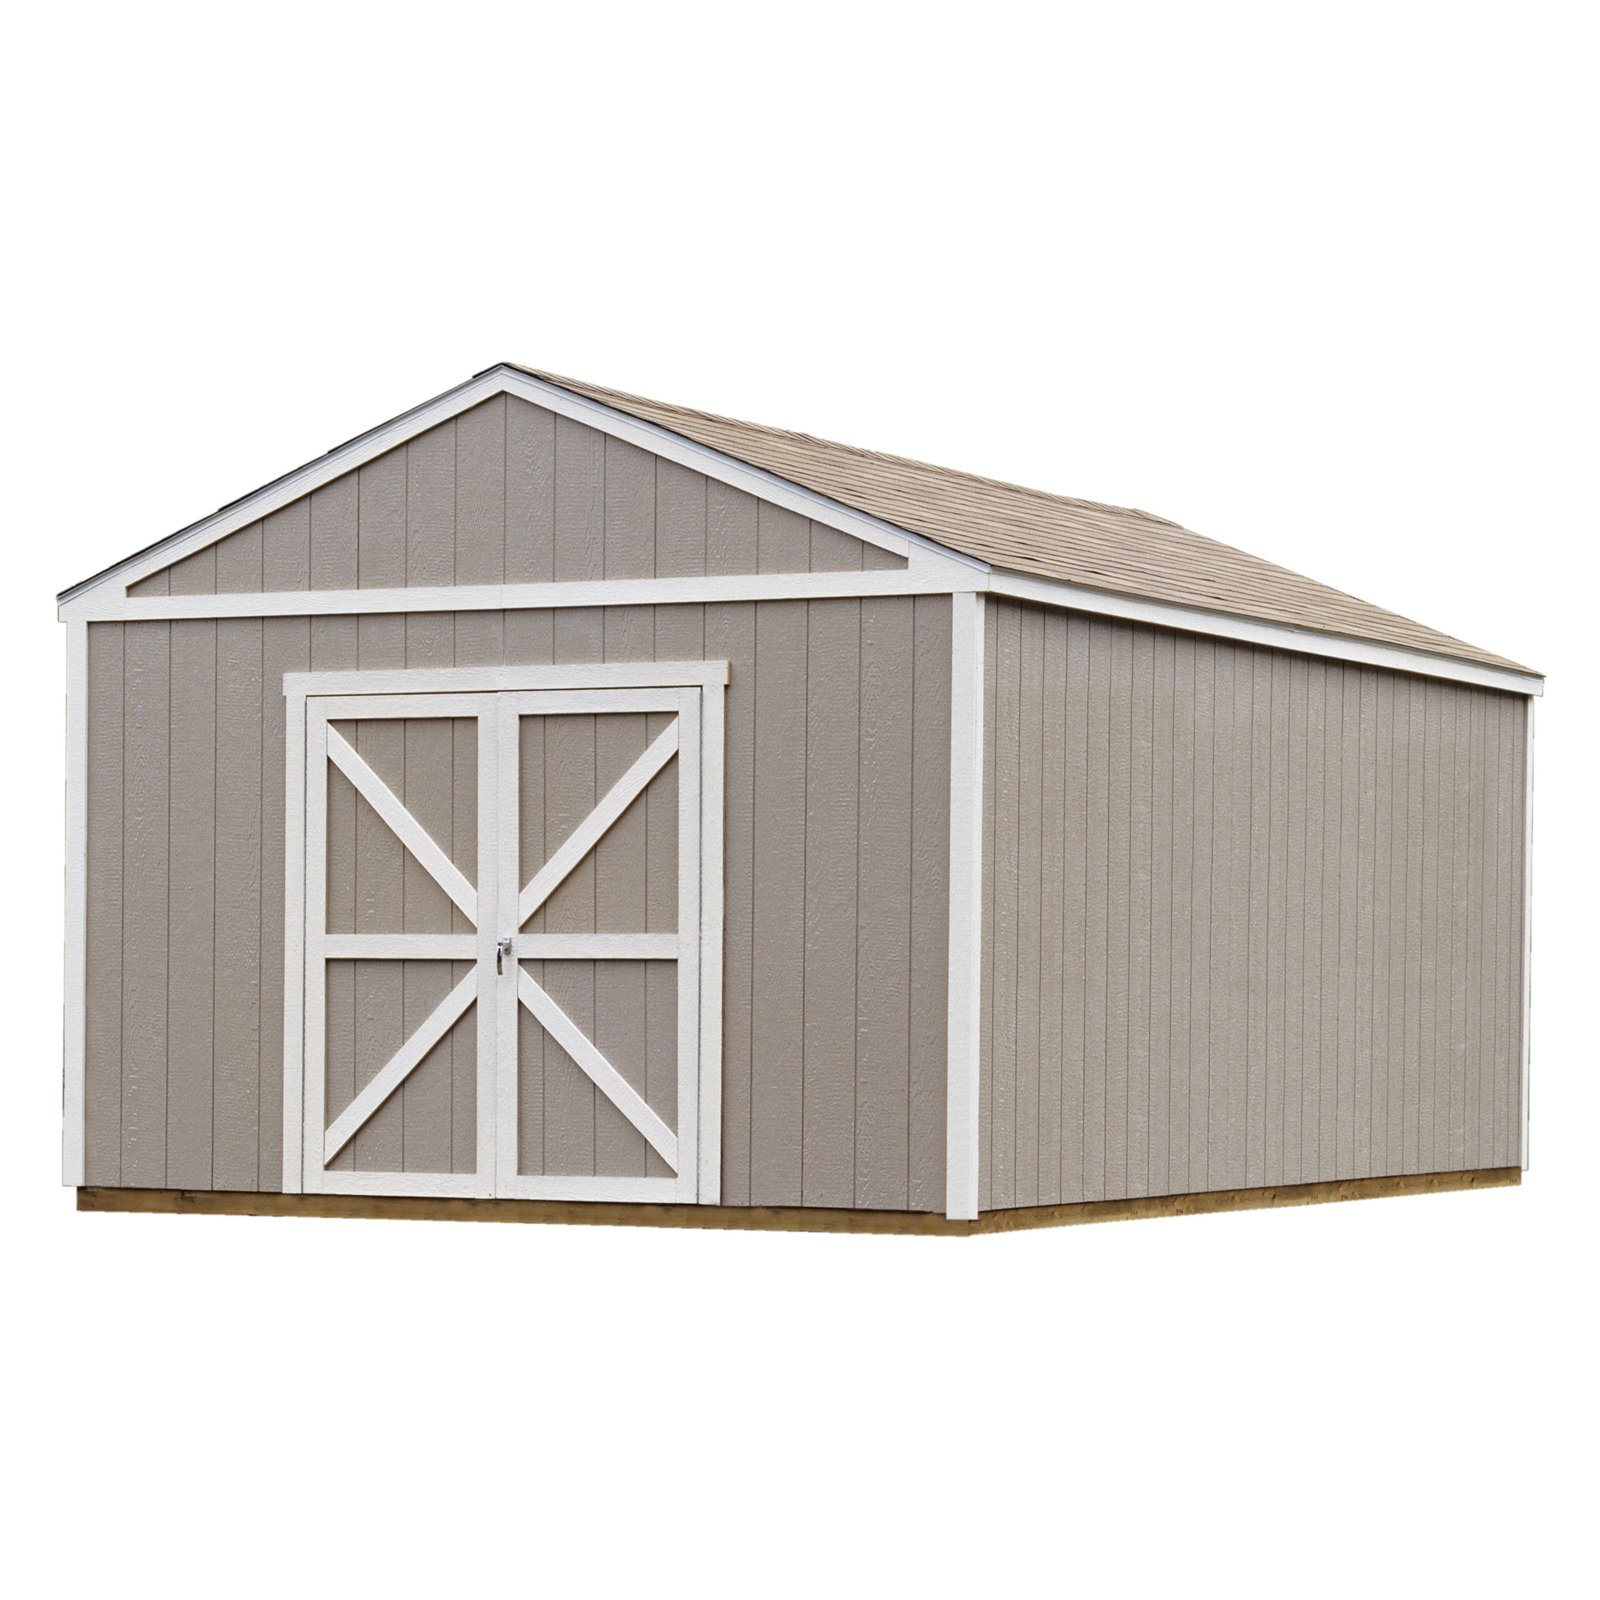 Handy Home Columbia Storage Shed - 12 x 24 ft.